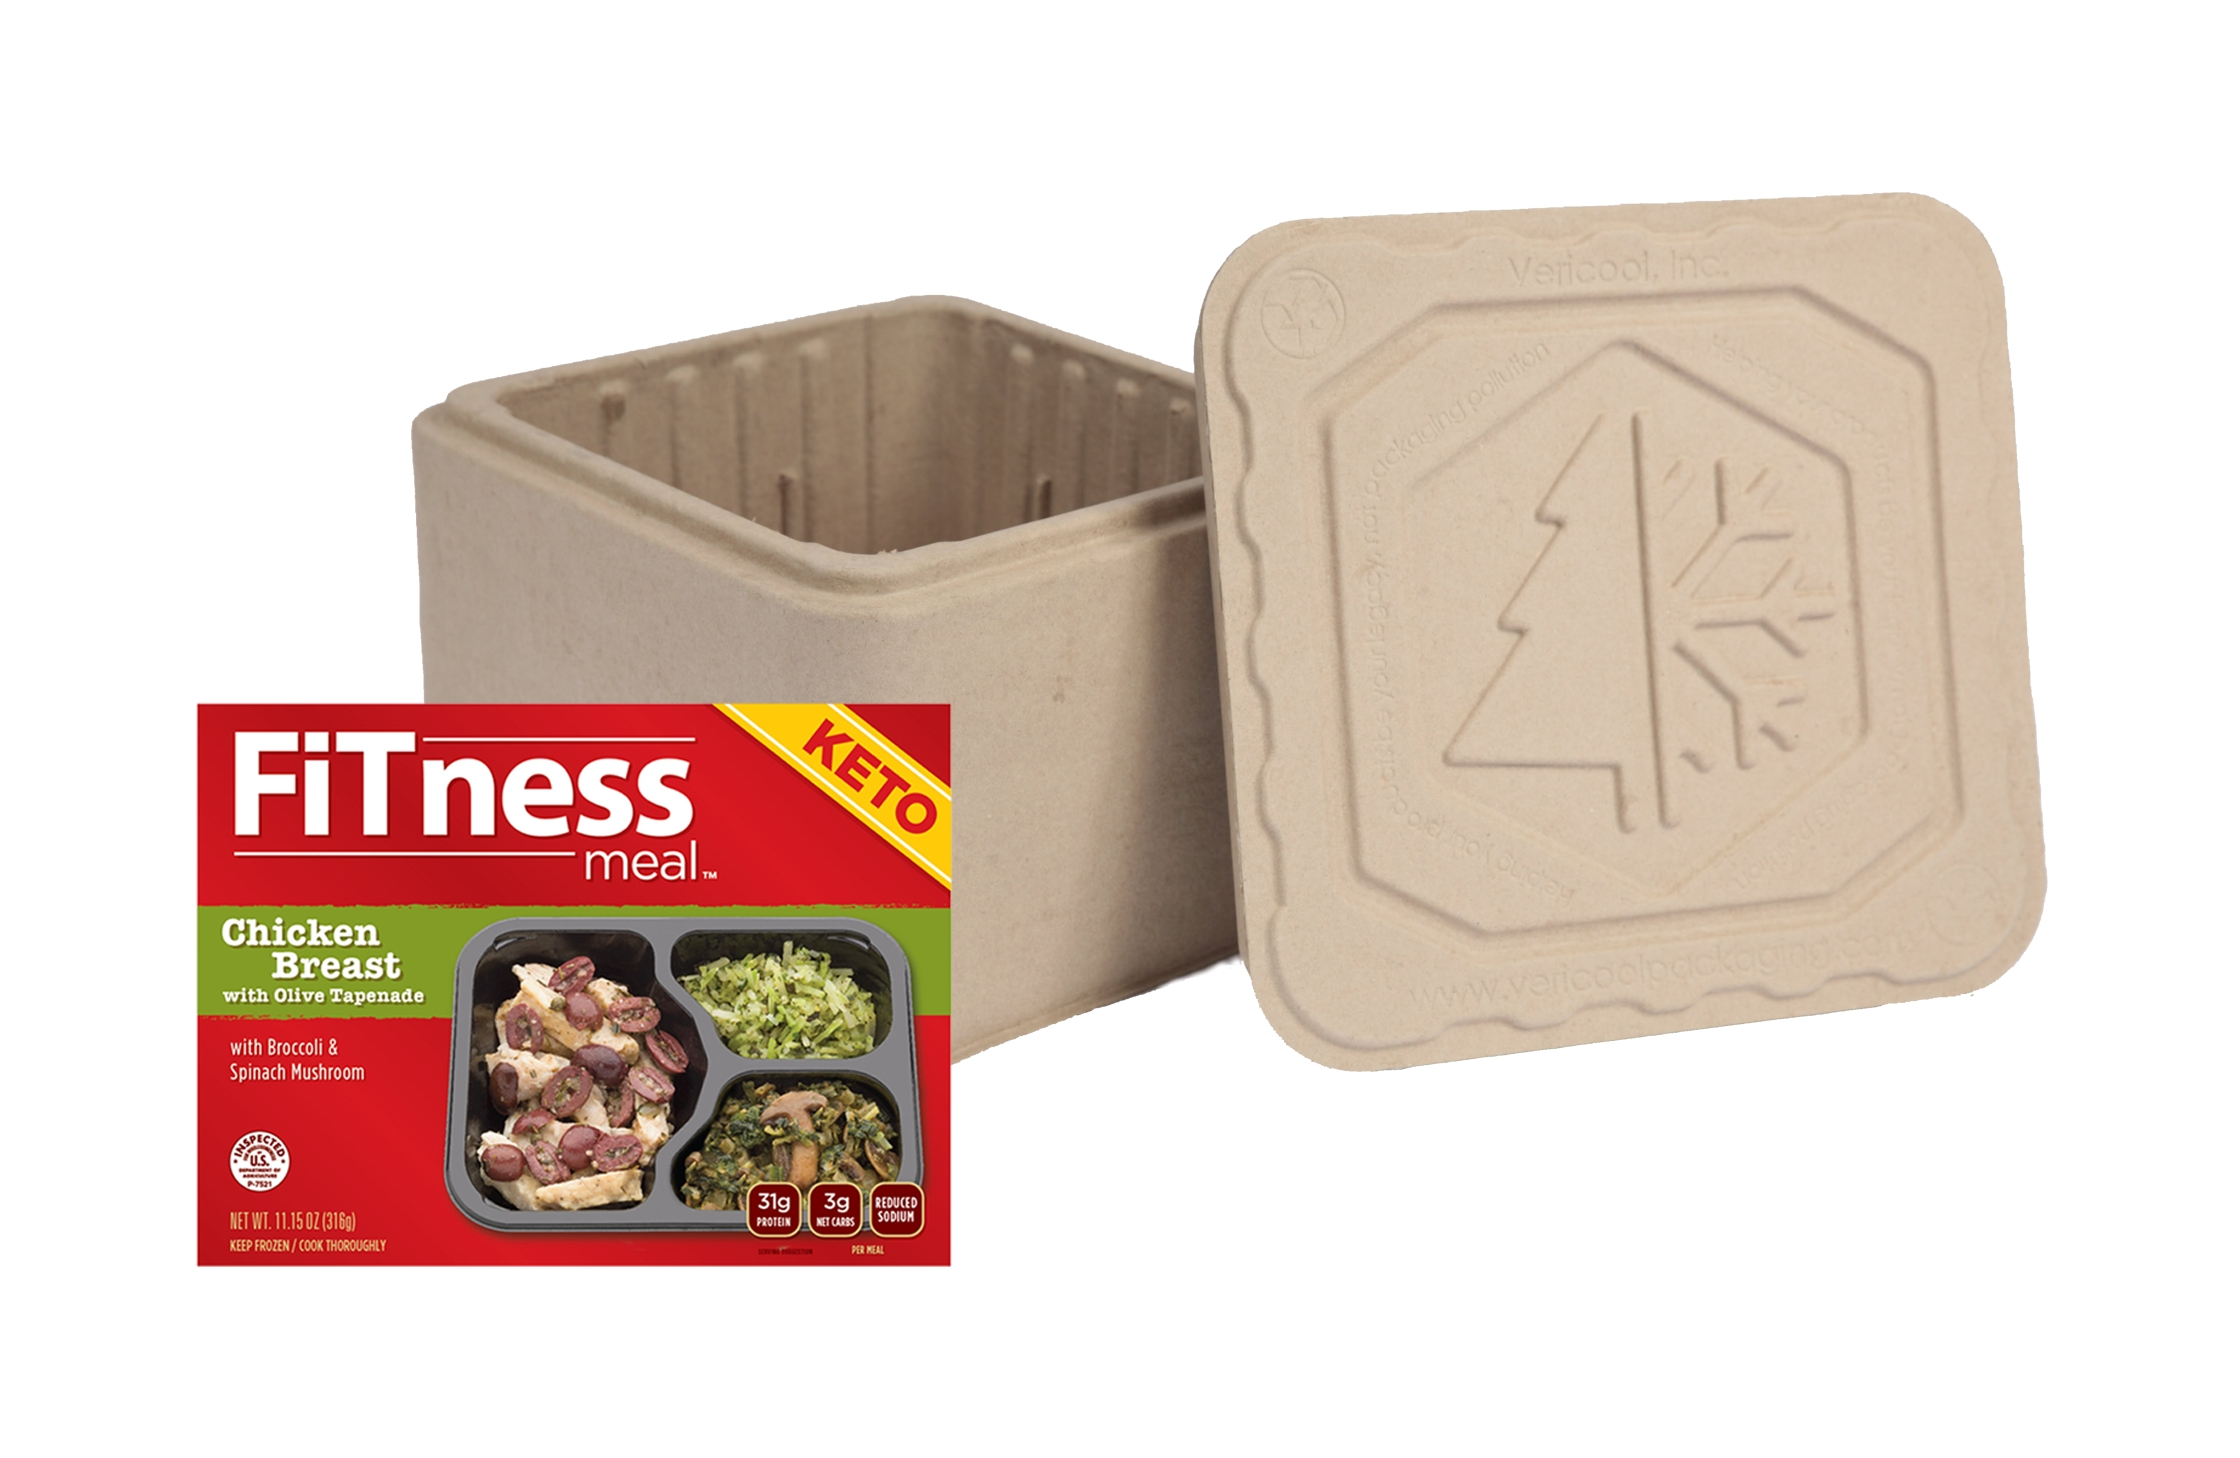 Kenic Fitness Meals from Proof Smart Food Go Sustainable with ... on